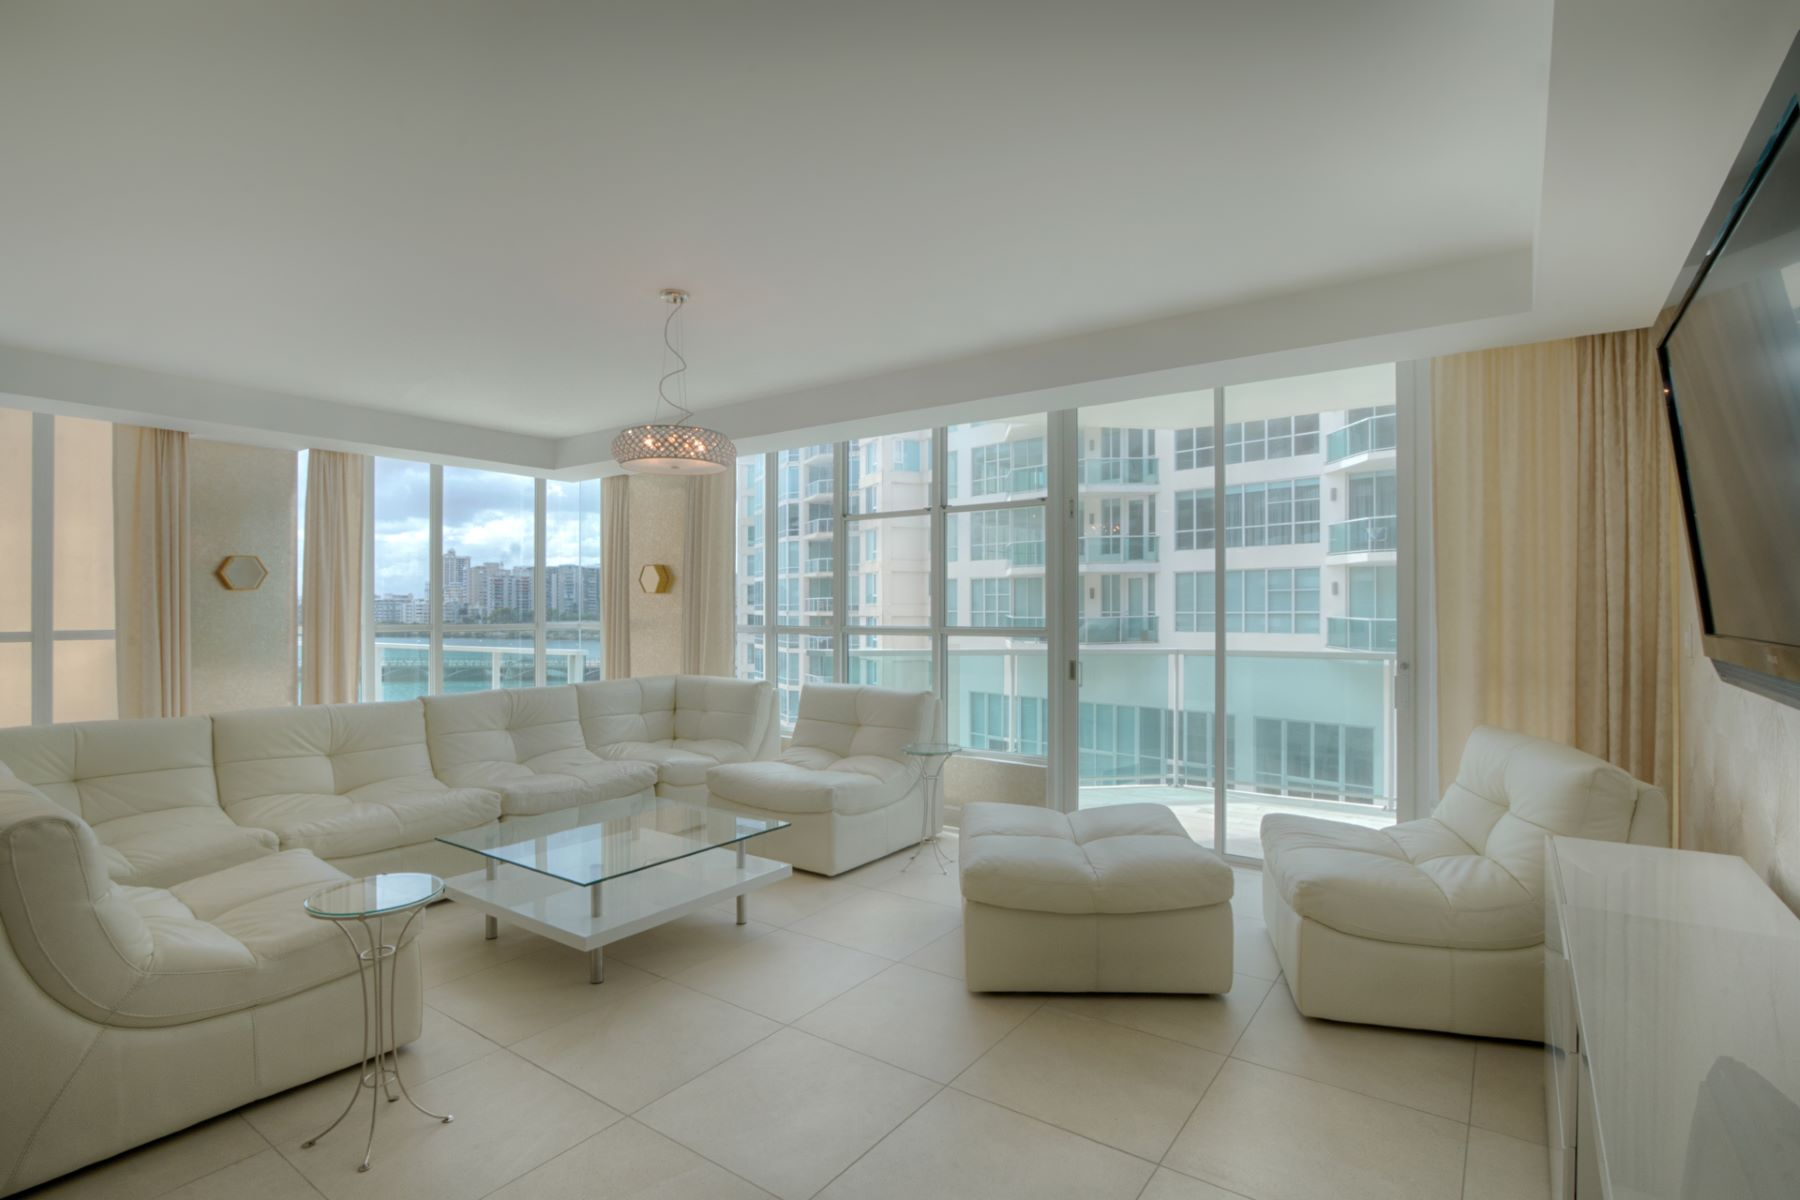 Additional photo for property listing at Exciting Sixth Floor Residence with Private Pool at Bahia Plaza 25 Munoz Rivera Avenue apt 601 San Juan, Puerto Rico 00901 Porto Rico